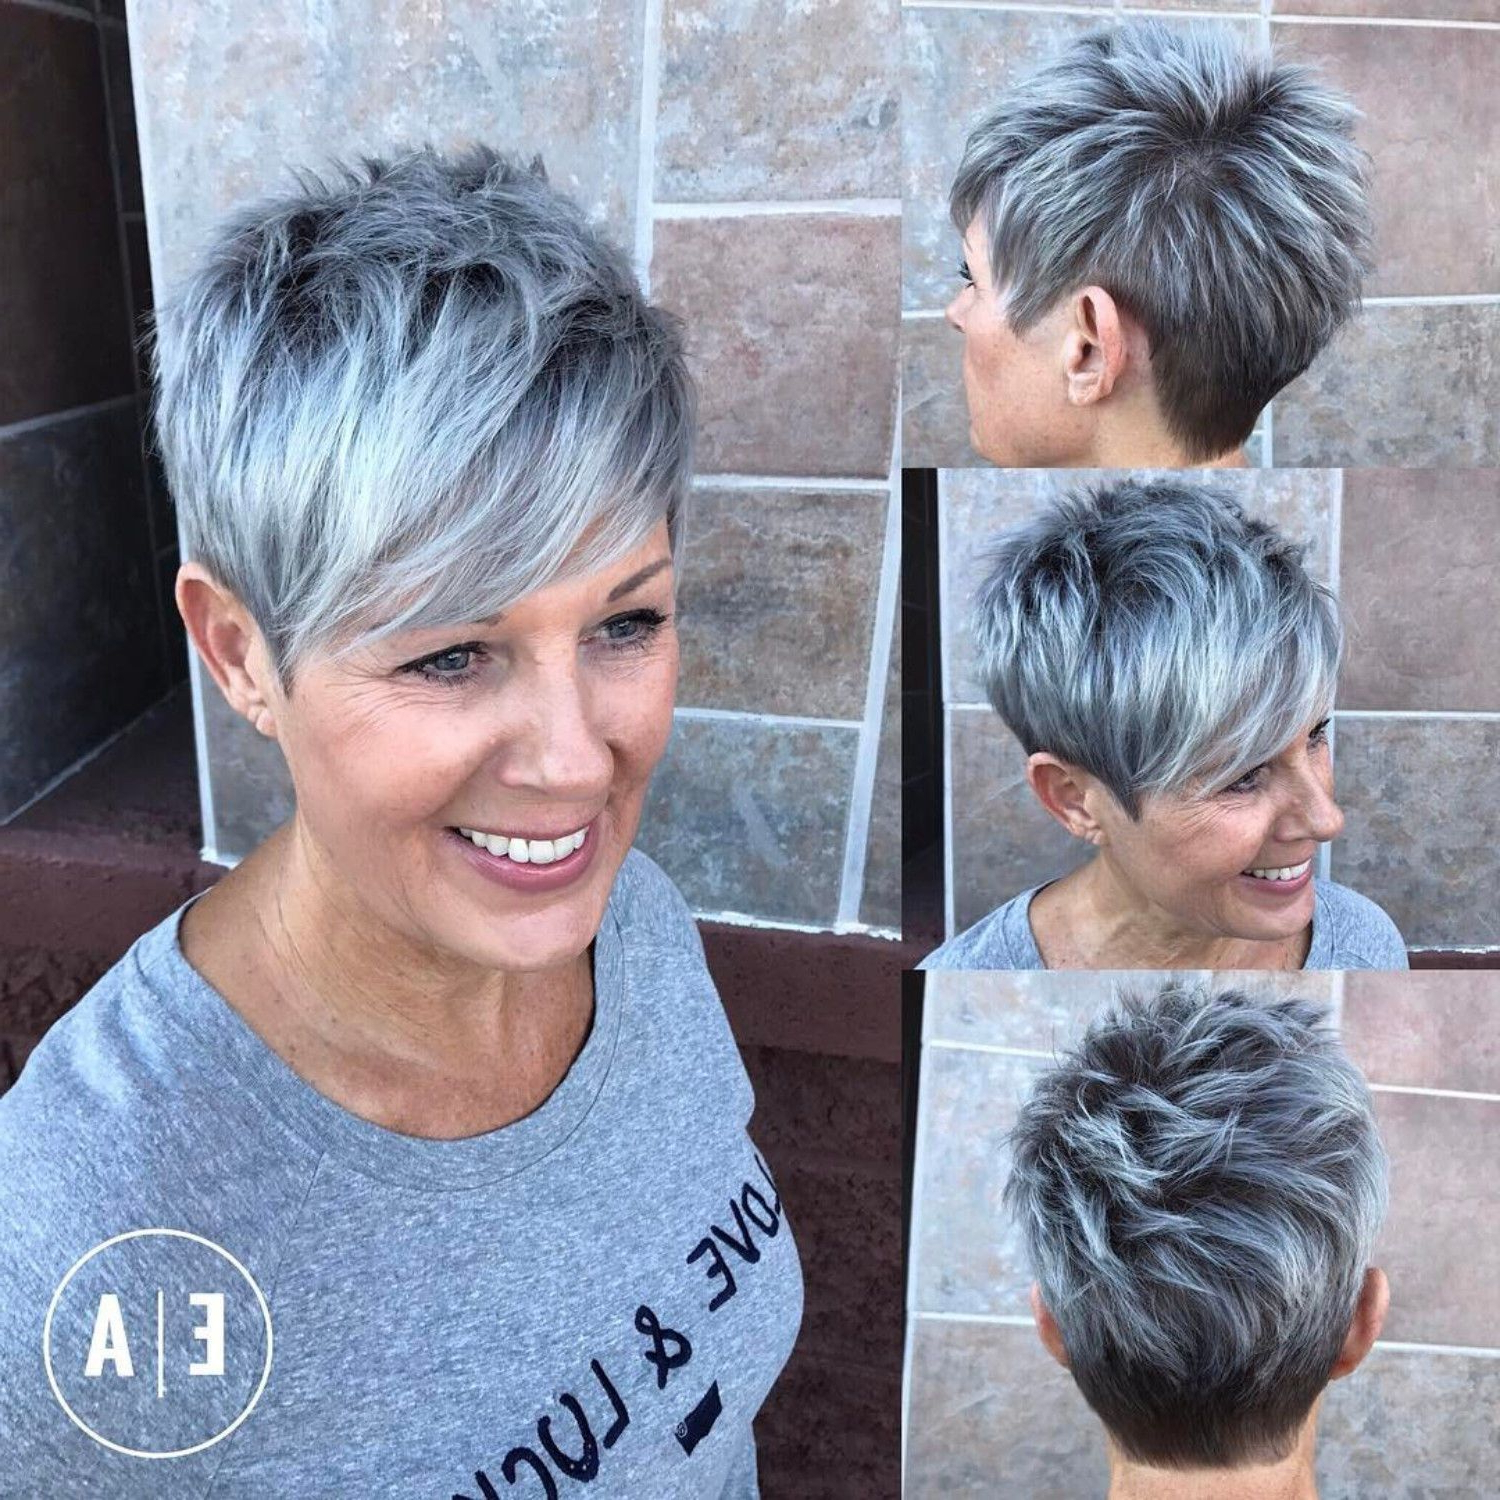 90 Classy And Simple Short Hairstyles For Women Over 50 | Gray Within Bronde Balayage Pixie Haircuts With V Cut Nape (View 8 of 20)